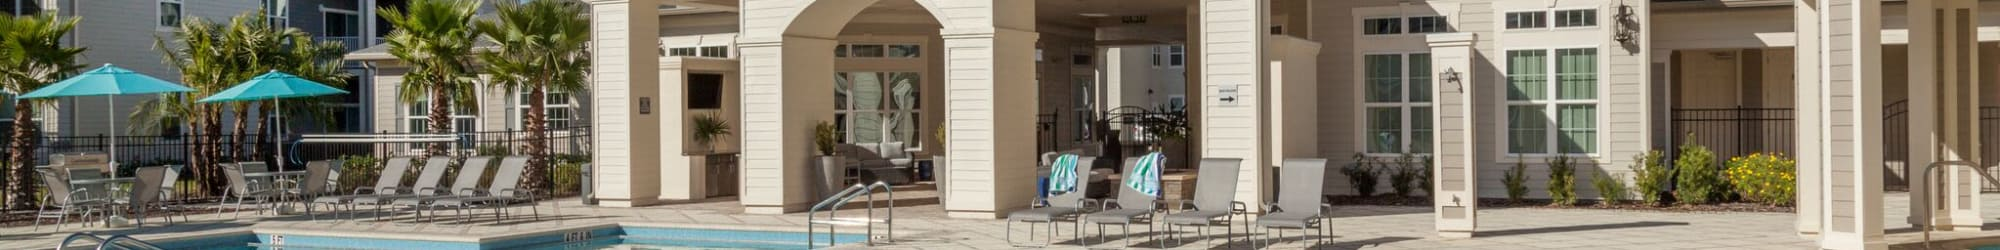 Contact The Avenue Apartments for information about our apartments in Lakeland